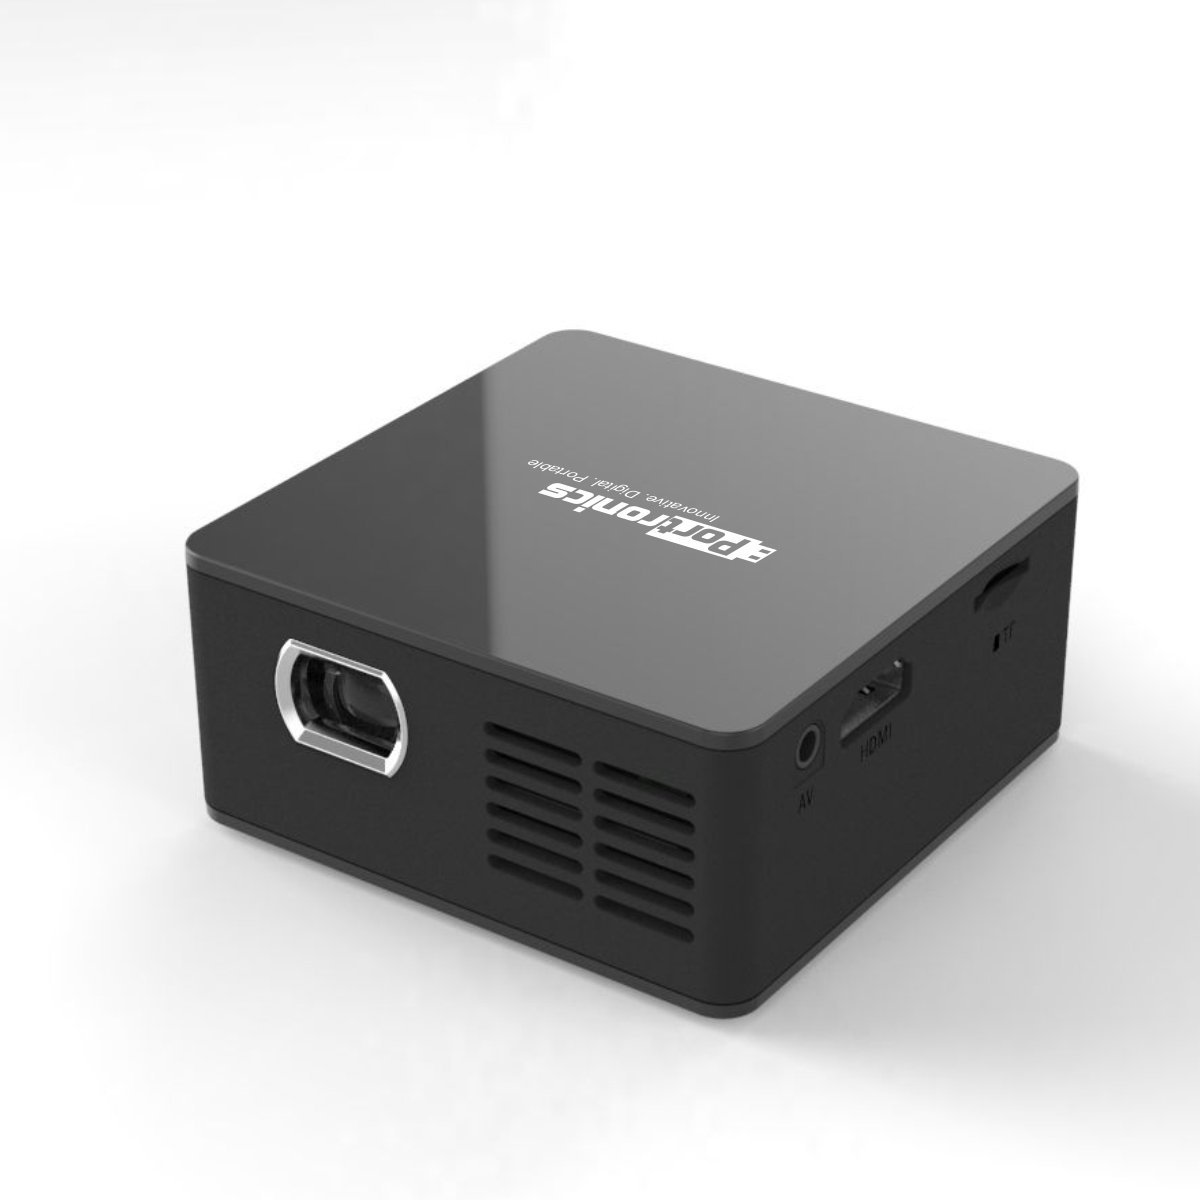 Portronics POR-600 Progenie Highly Powerful Portable LED Projector (100 lumens) is Well Suited for W